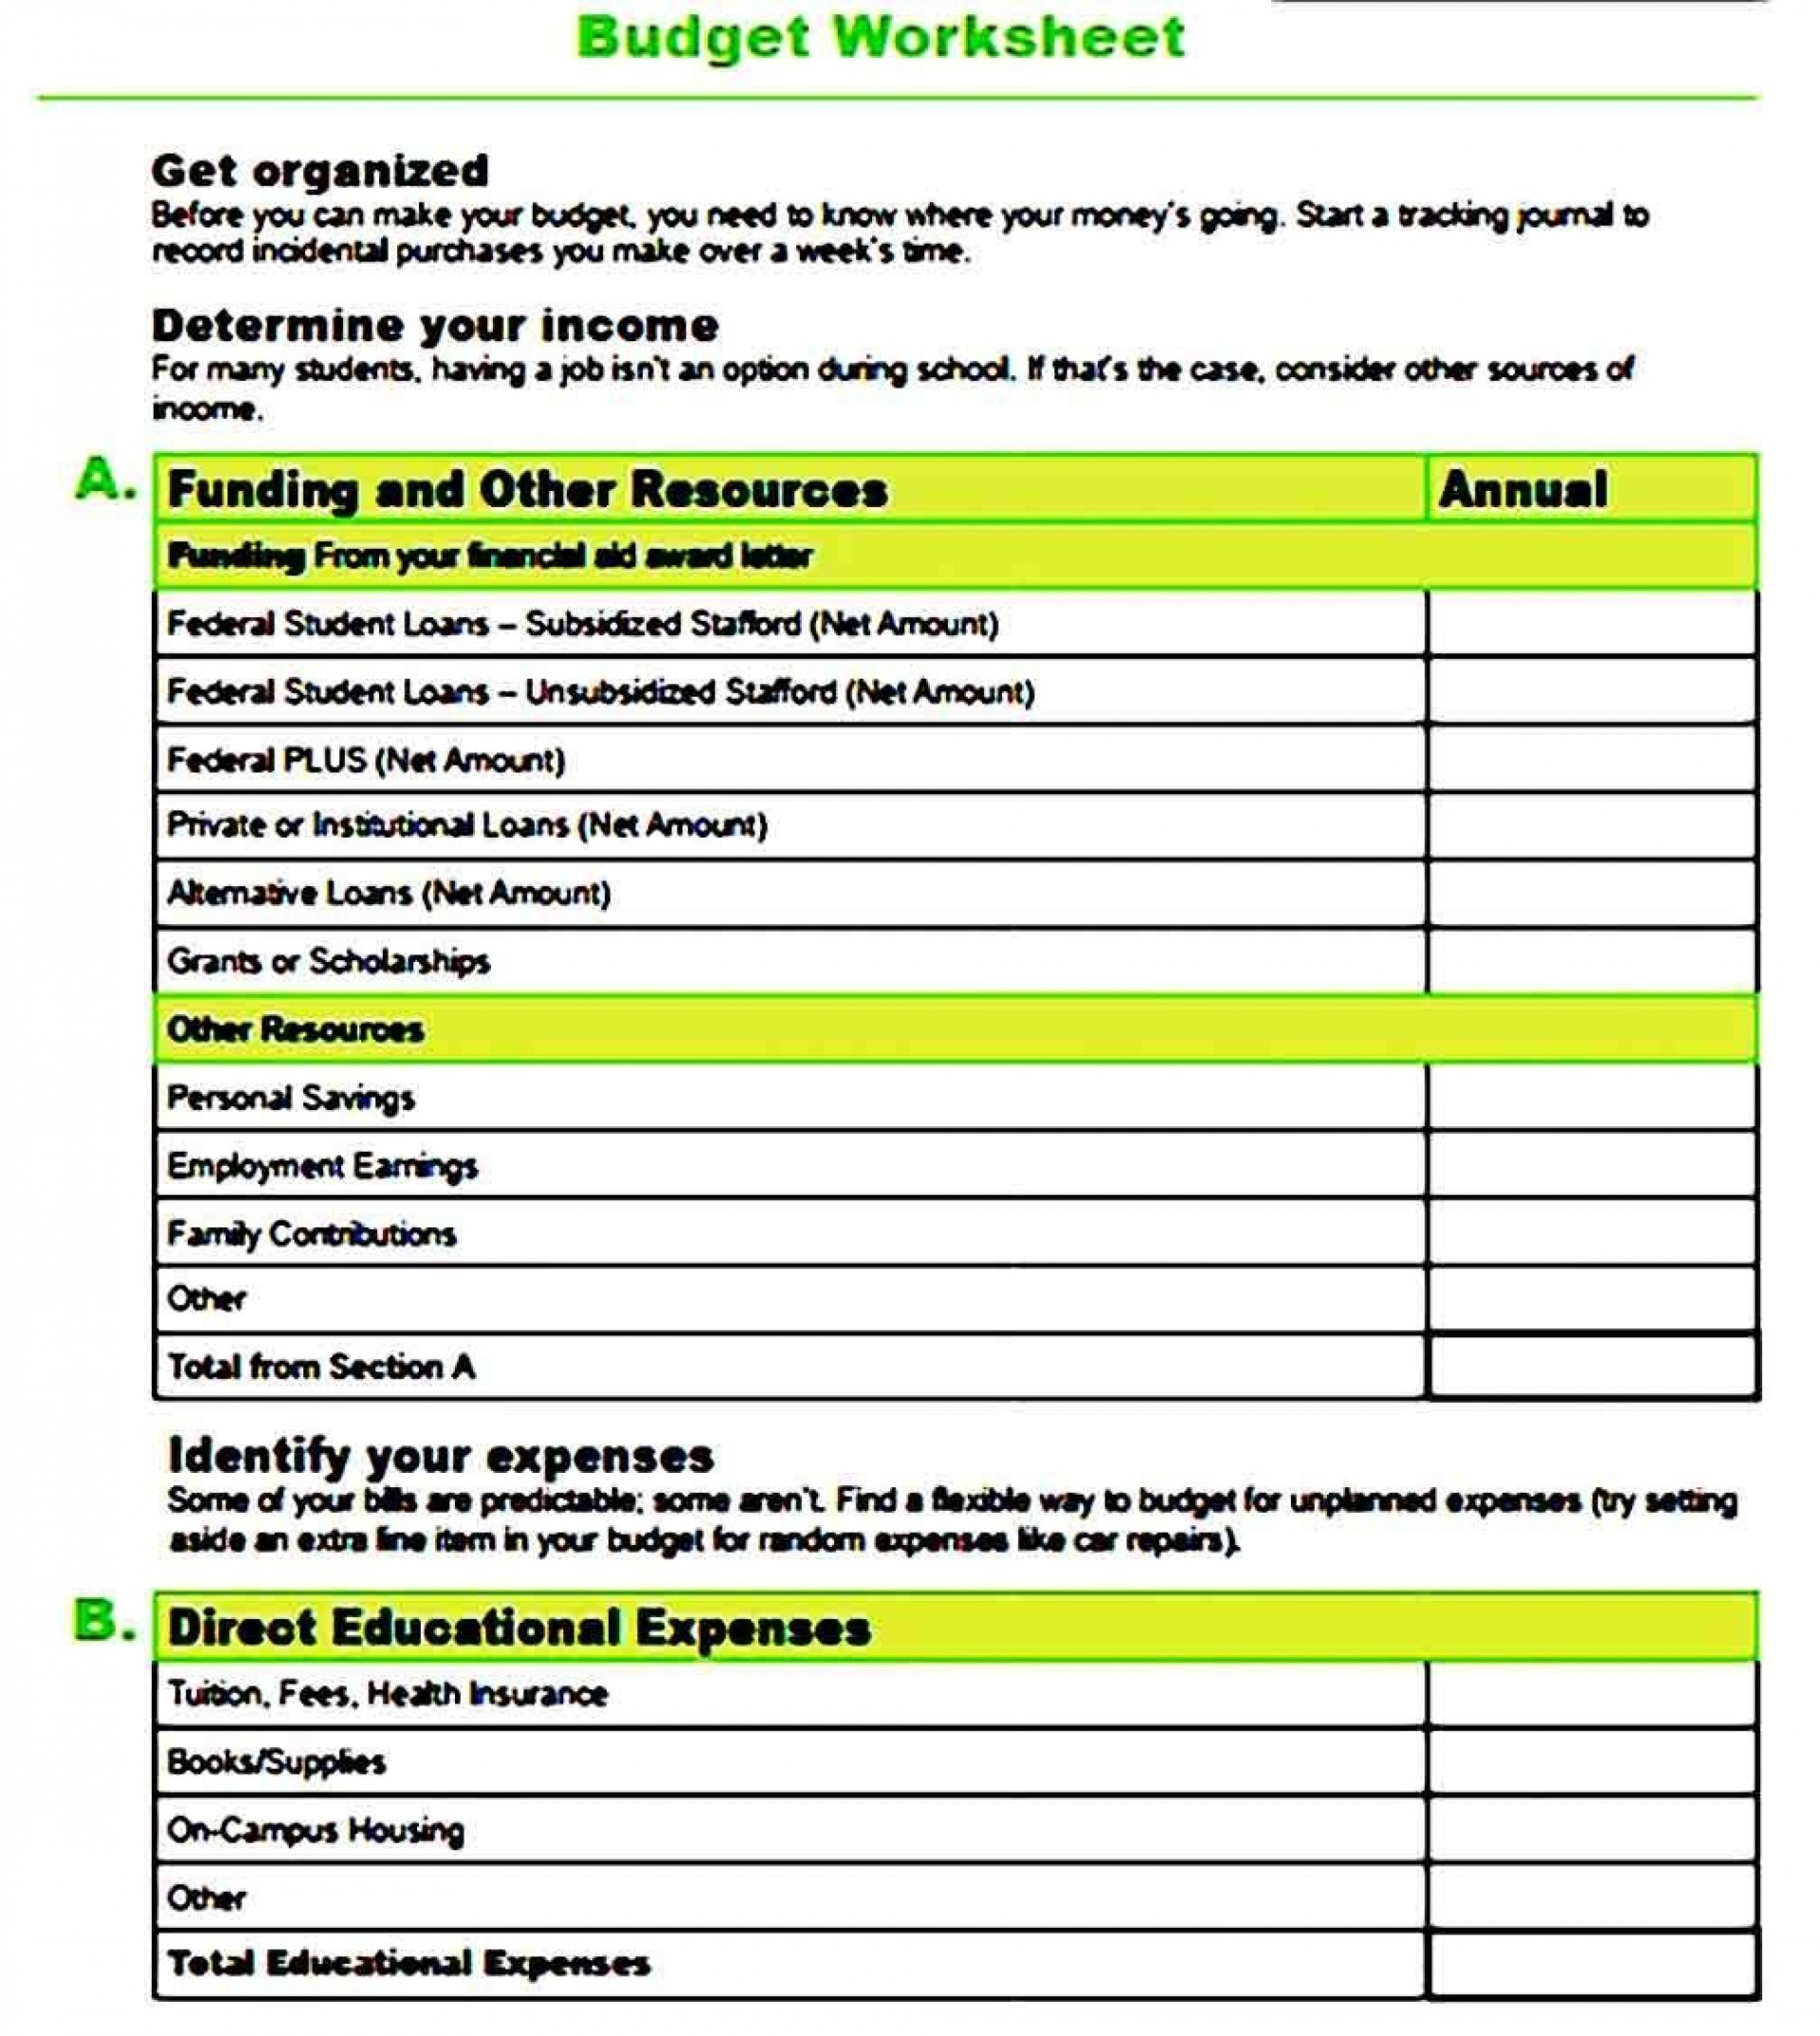 003 Incredible Sample Line Item Budget Template Example 1920